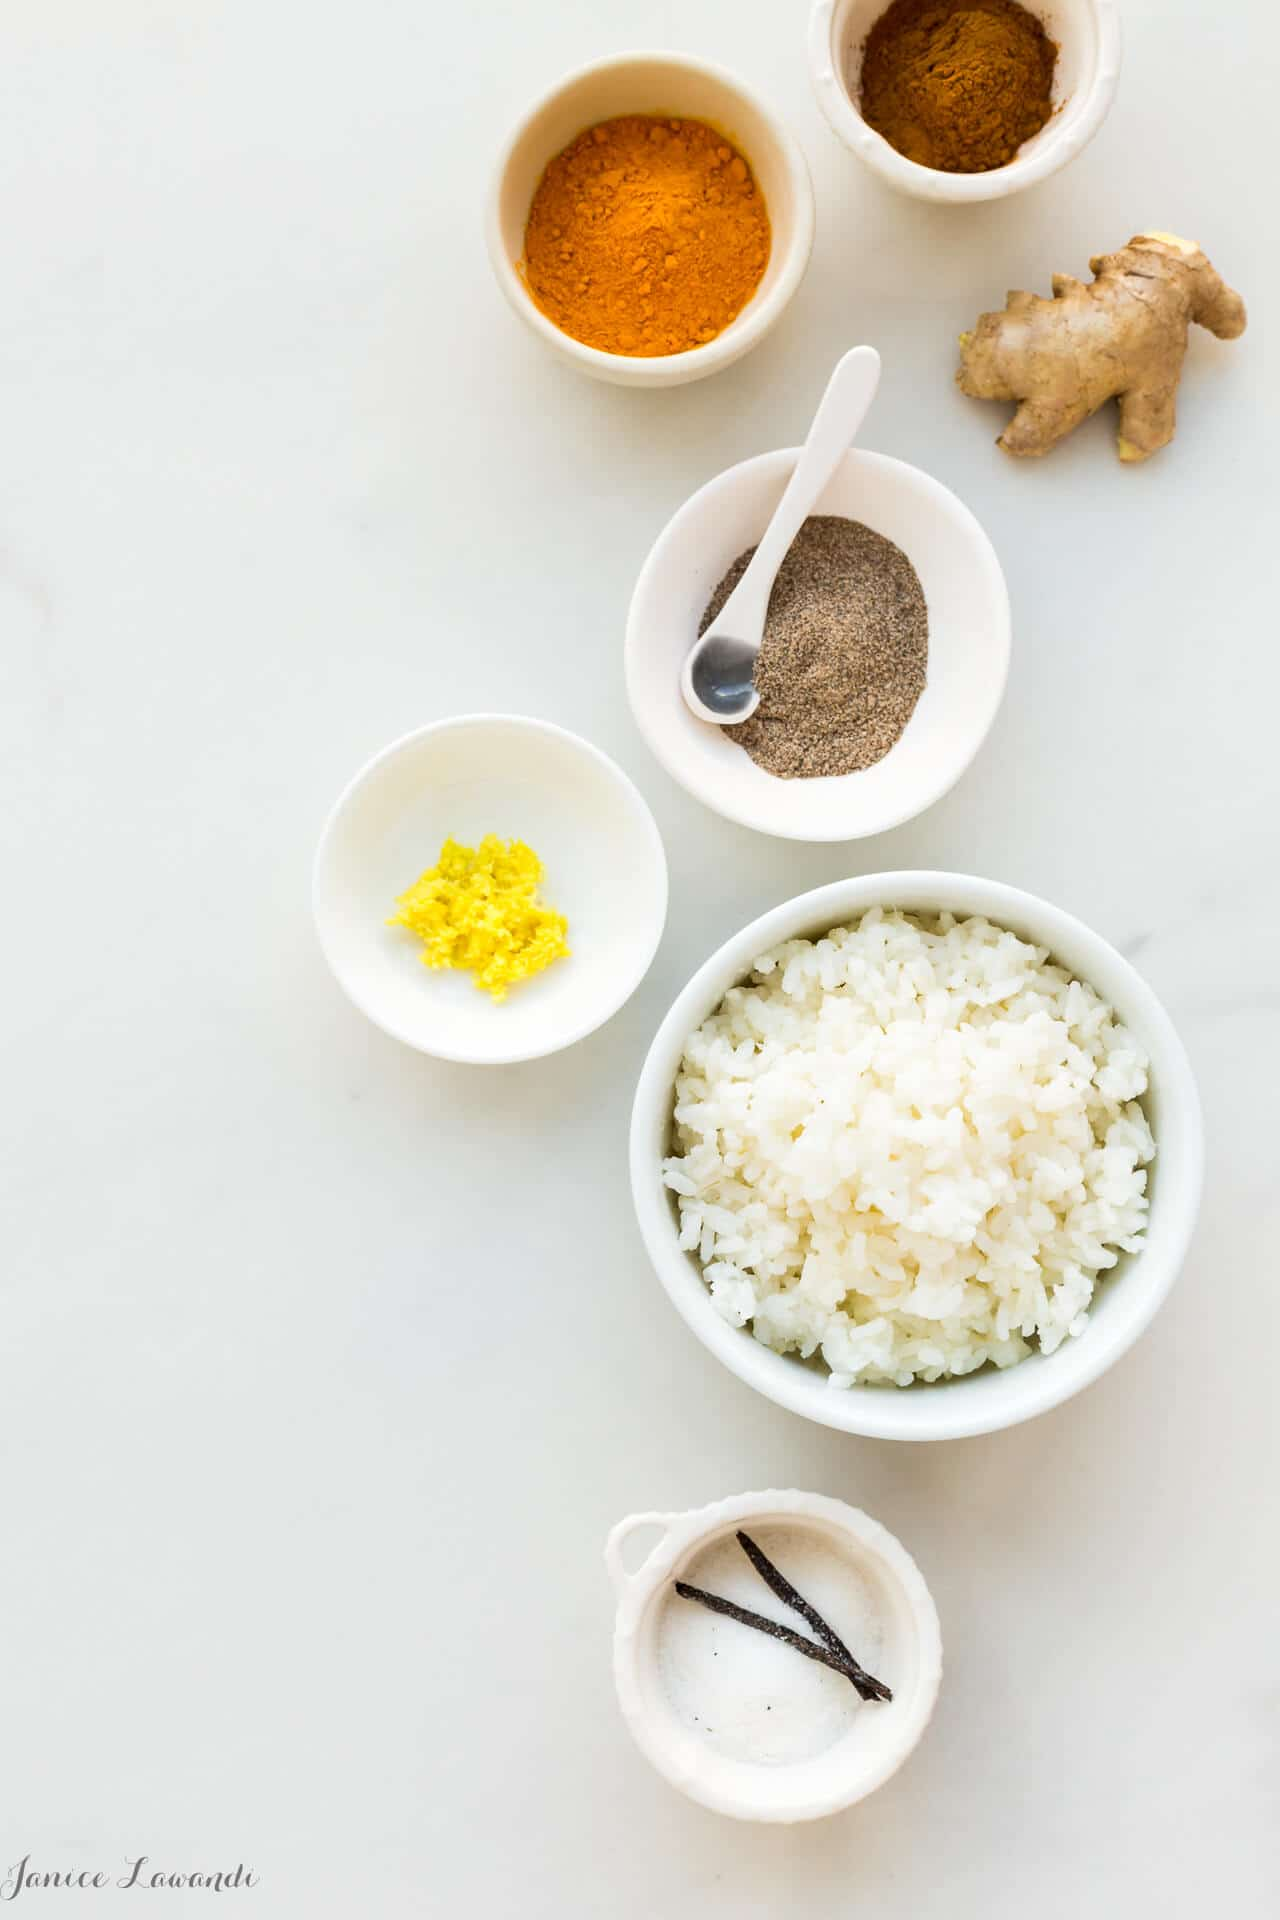 Spices to make golden milk rice pudding include turmeric, ginger, cardamom, and cinnamon